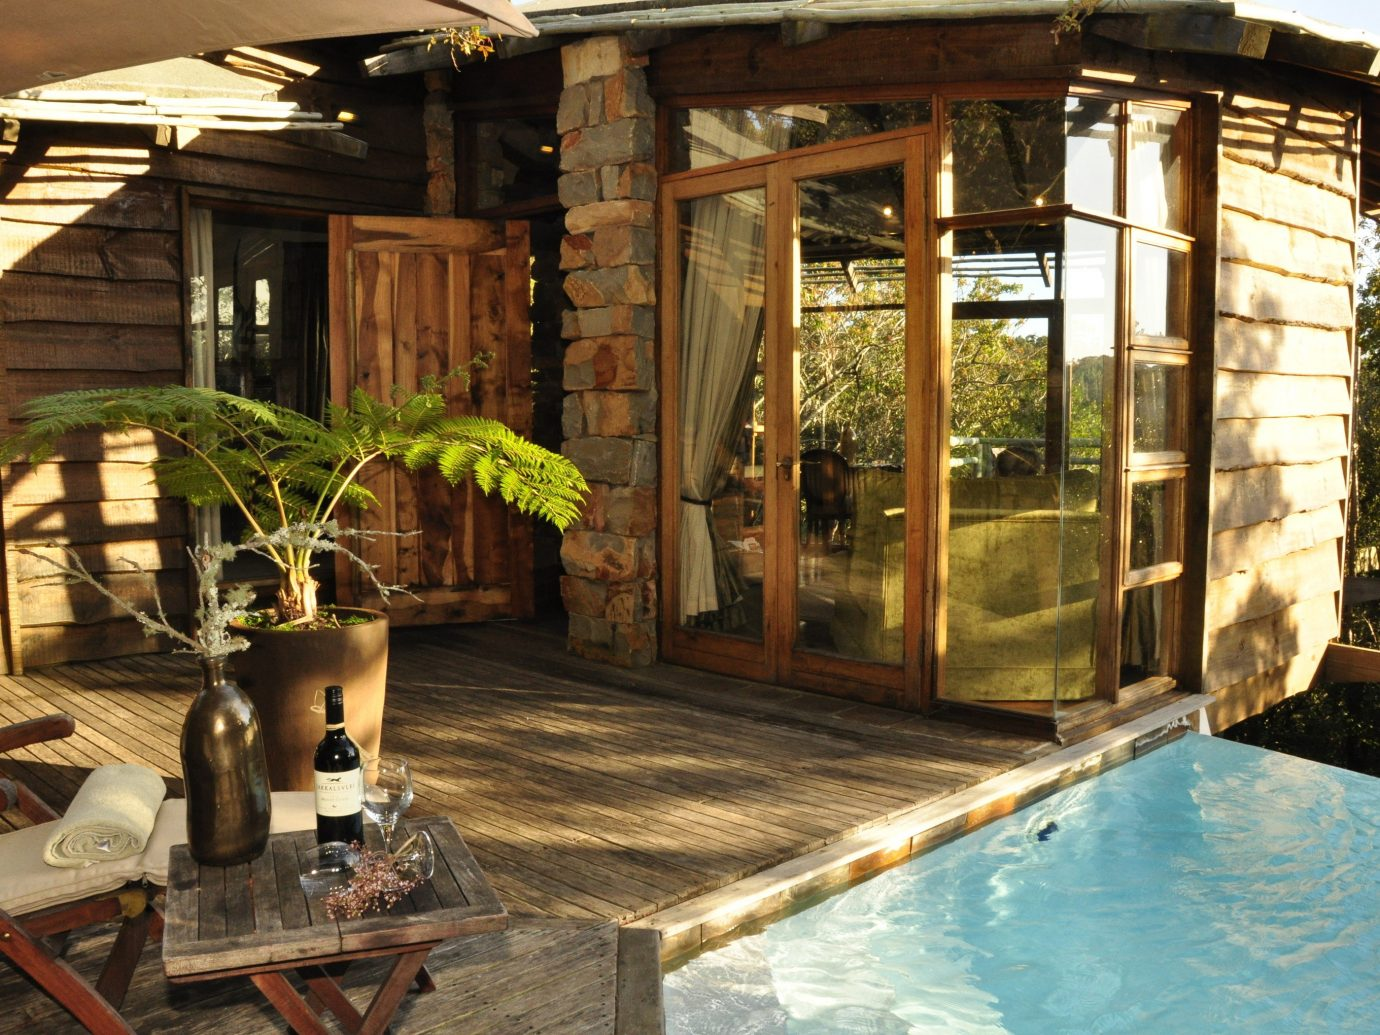 Hotels table building property estate house backyard outdoor structure home cottage swimming pool Courtyard mansion Villa porch log cabin furniture